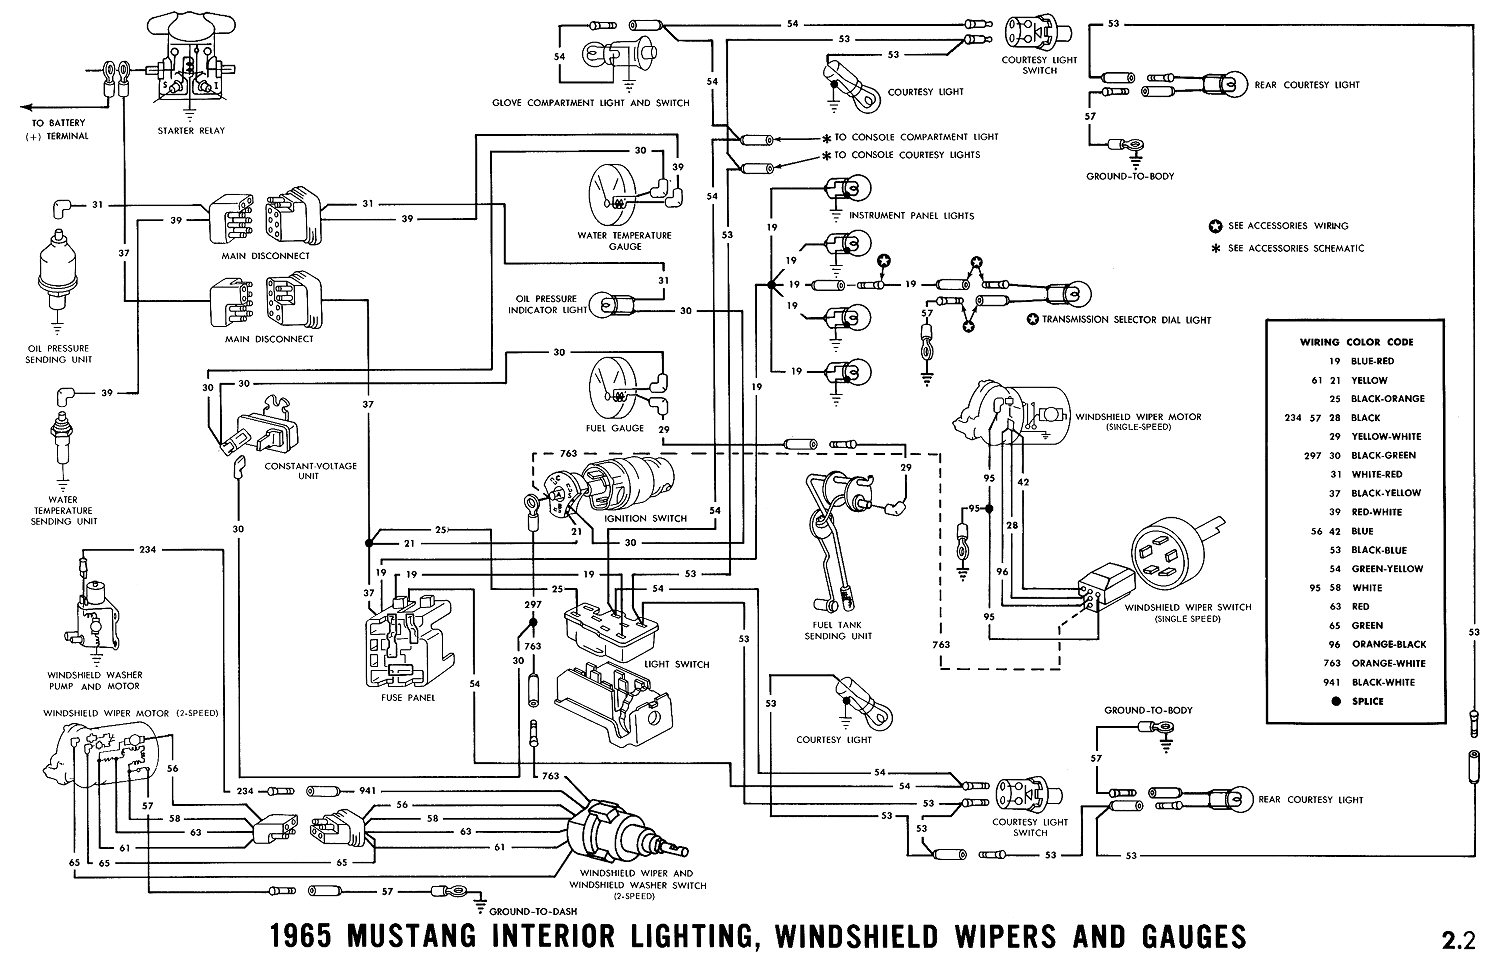 Instrument Wiring Diagram Pdf Great Engine Schematic 1964 Chevy Truck 1966 Mustang Database Rh 20 5 Infection Nl De For 71 C10 81